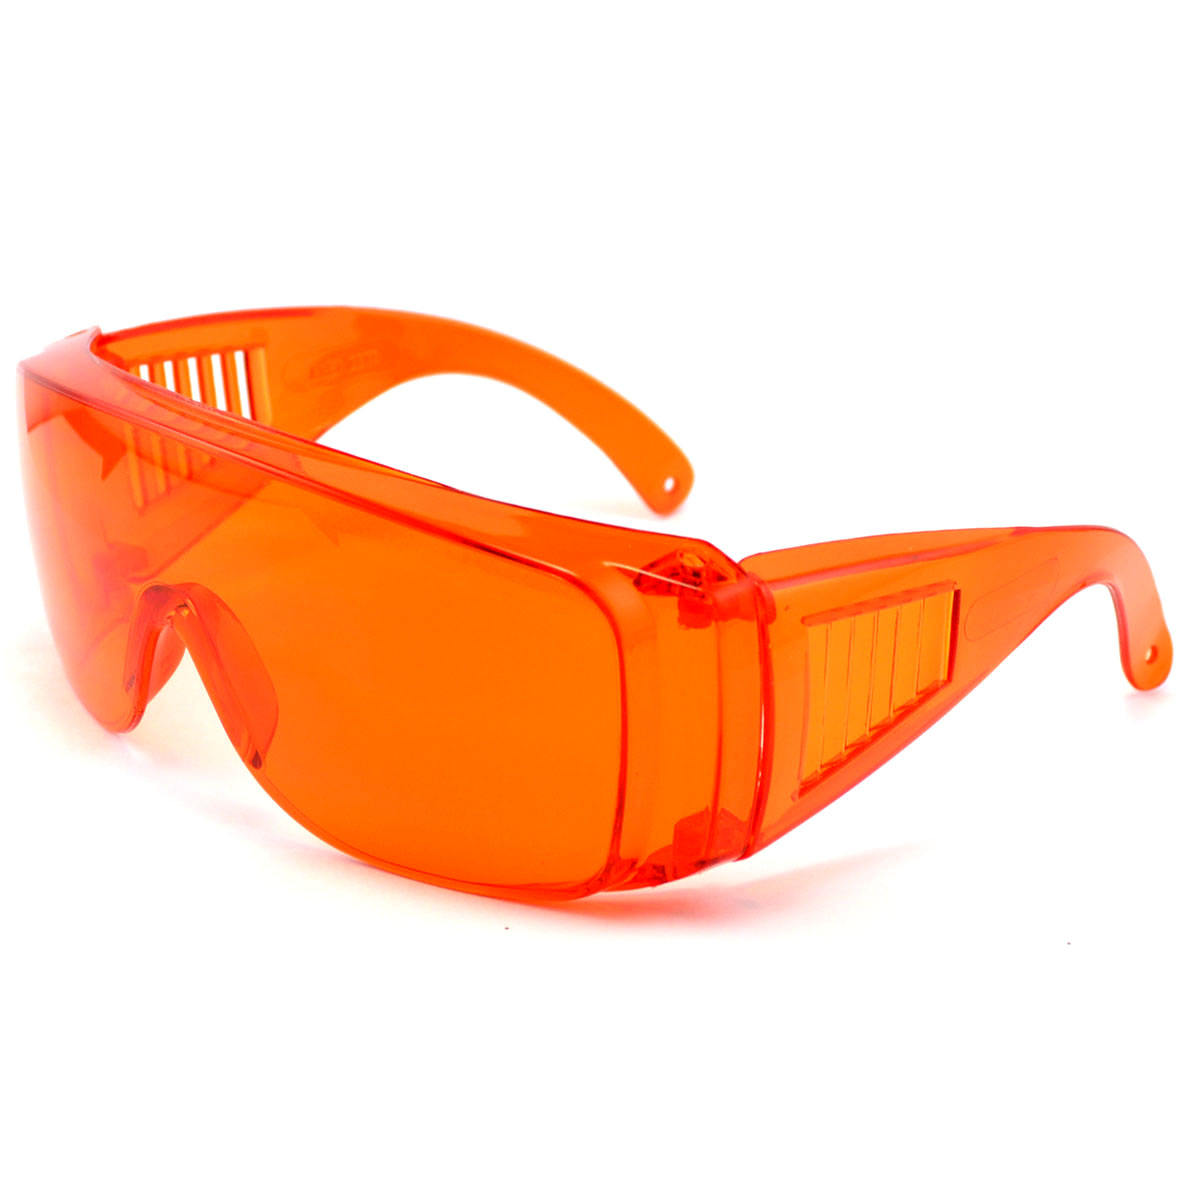 Multifunctional Anti Fog UVC 200-540nm Blue Light Blocking Protective Eyewear Safety Glasses for Home Workplace Lab